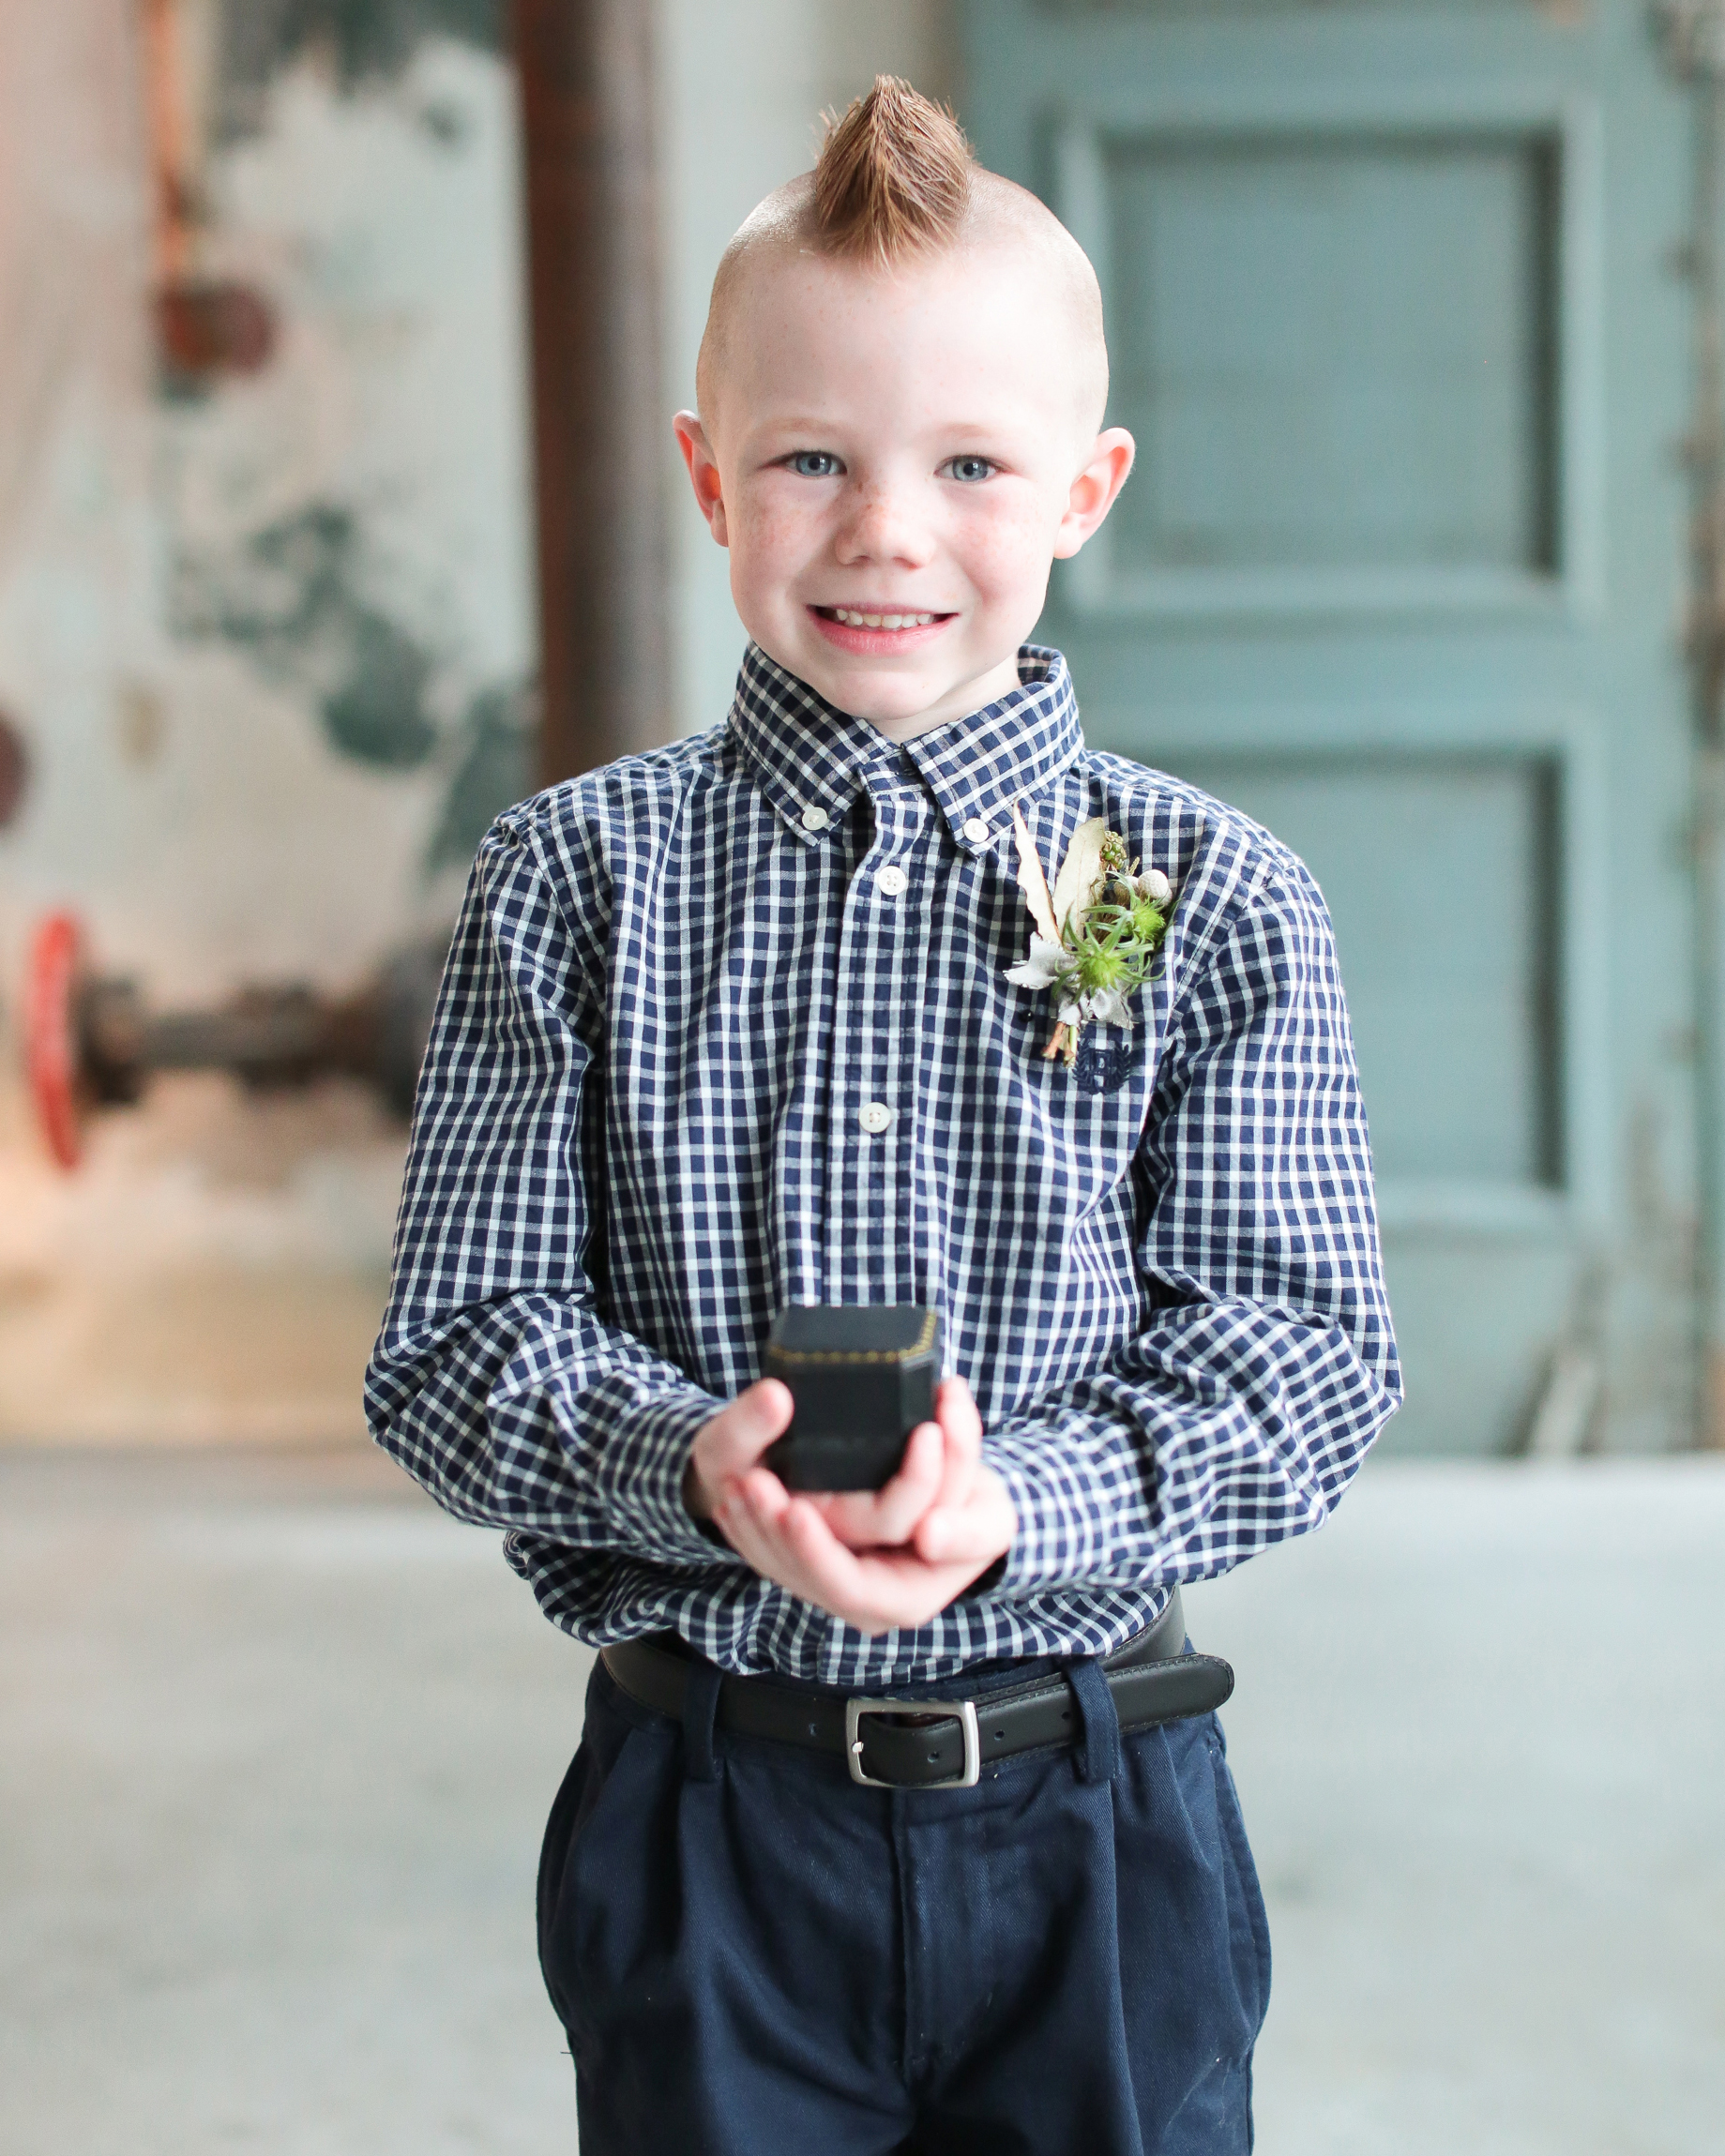 coleen-brandon-wedding-ringbearer-0614.jpg